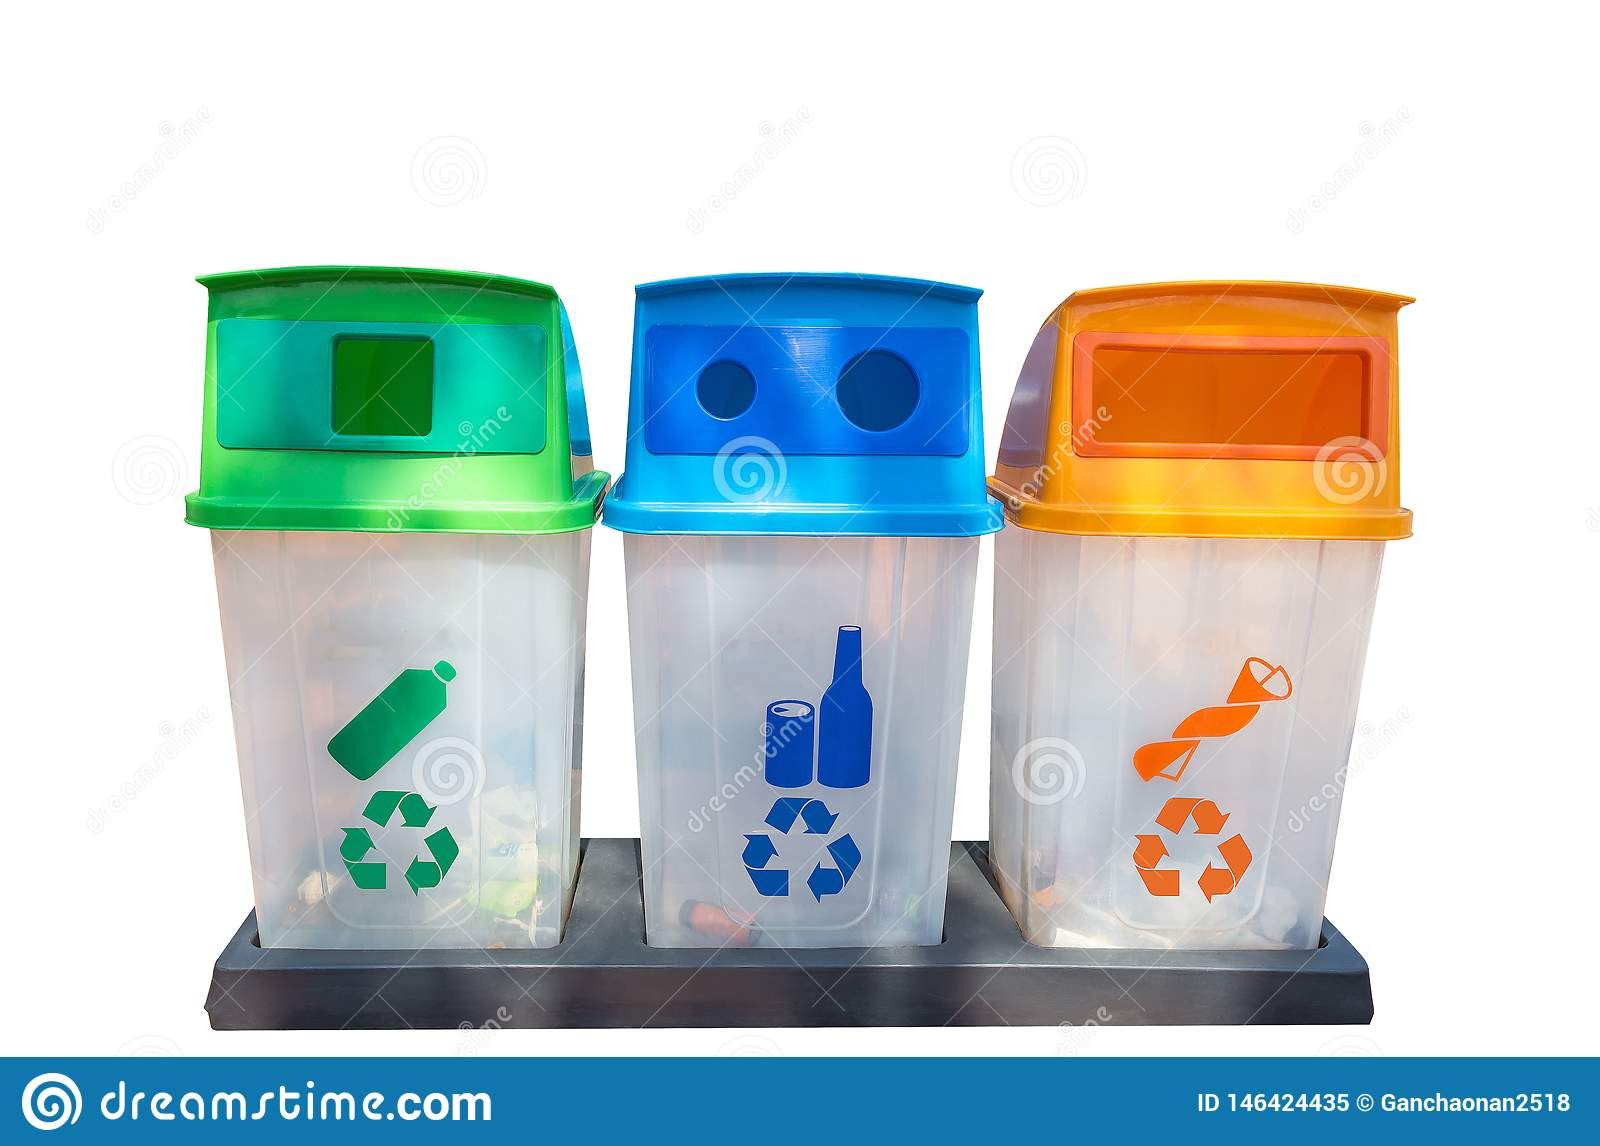 Green, yellow, blue and recycle bins with recycle symbol isolated on White Background